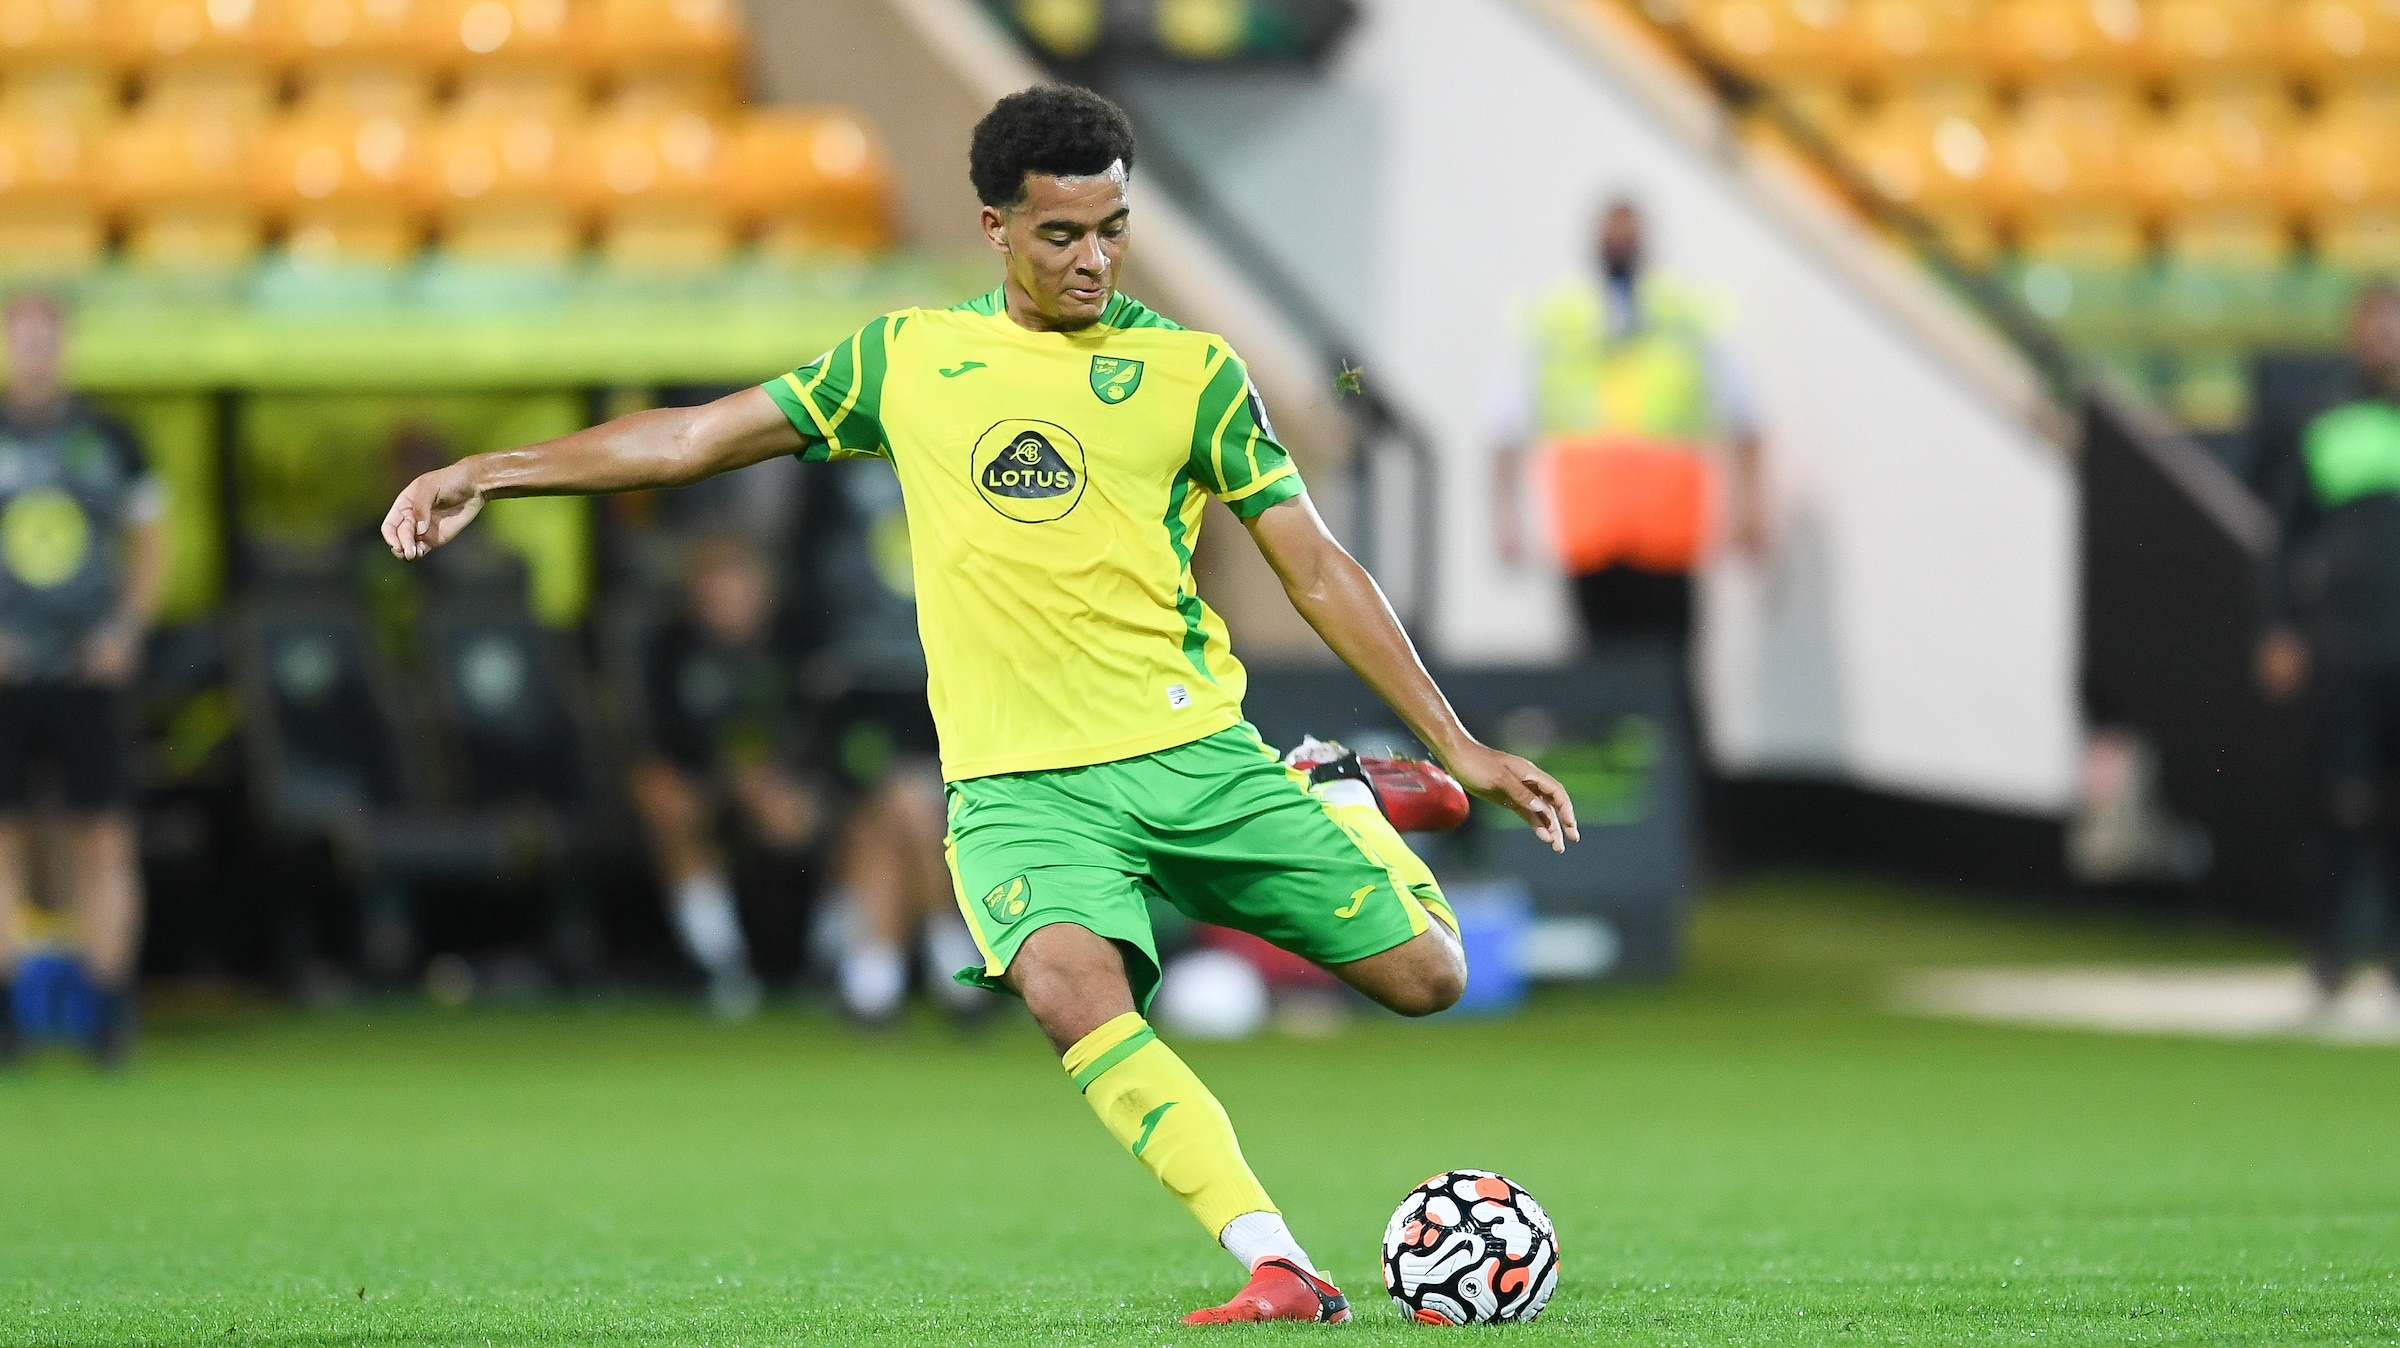 tom-dickson-peters-hat-trick-earns-under-23s-a-point-in-premier-league-cup